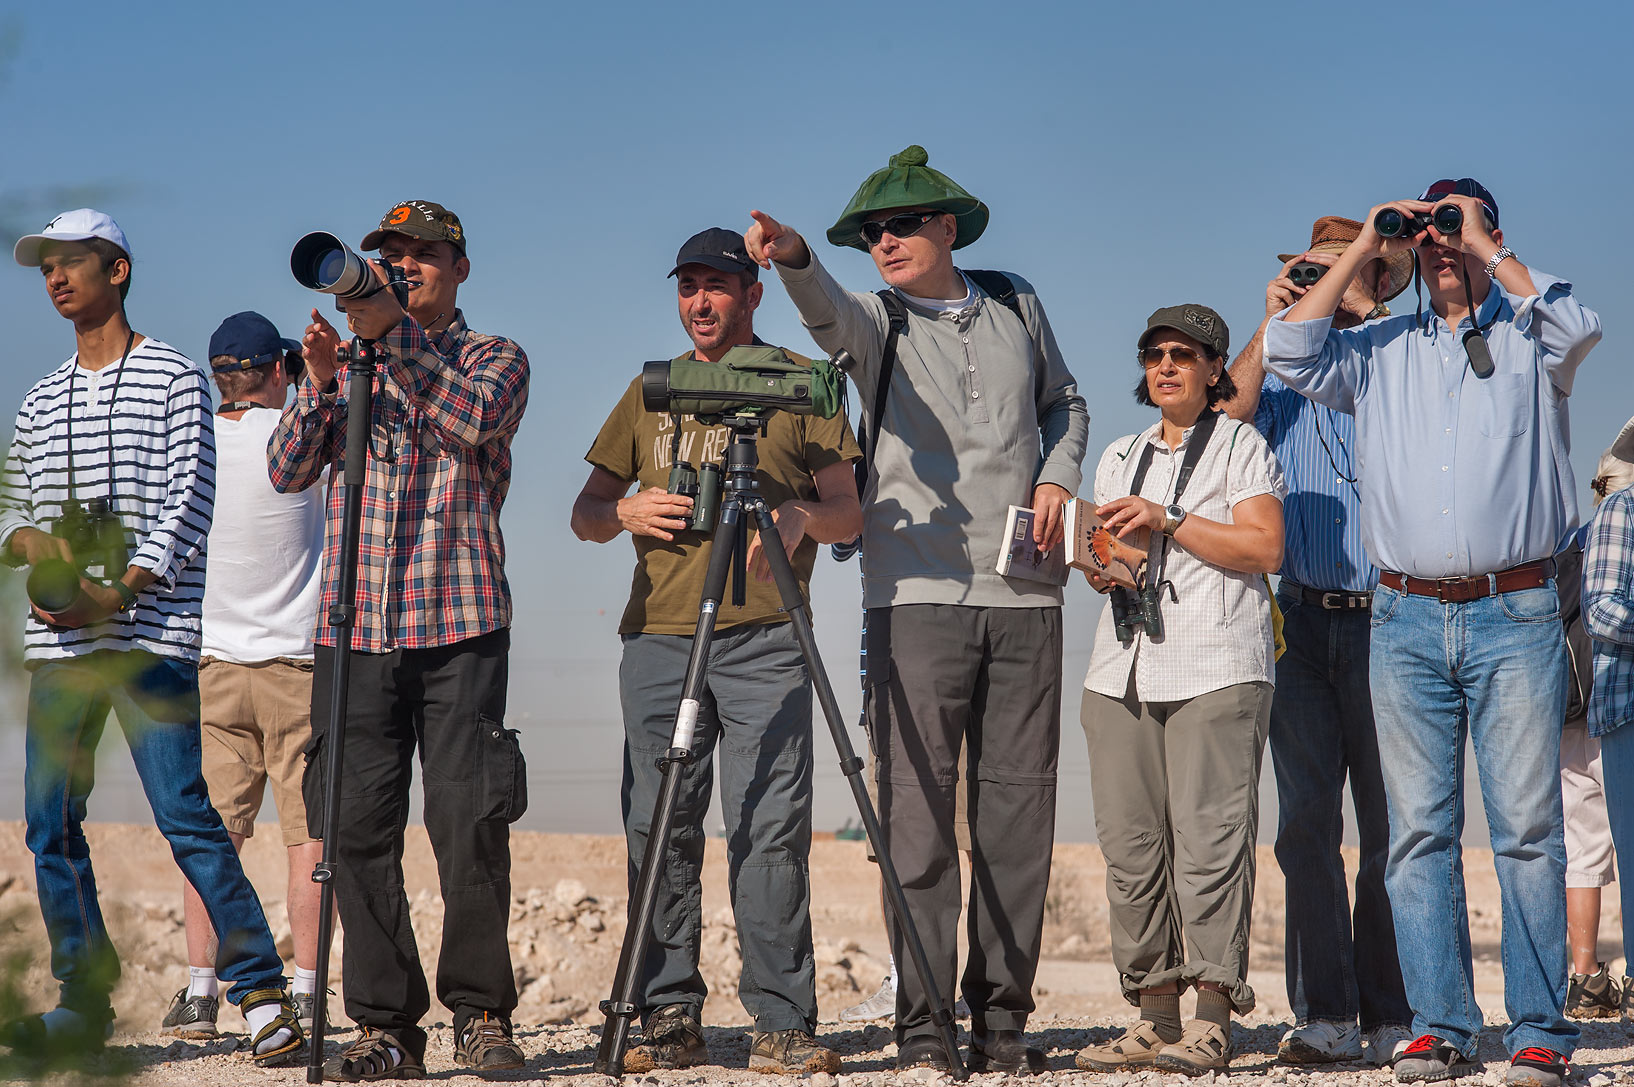 Group of birdwatchers from QNHG (Qatar Natural...treatment ponds. Doha, Qatar